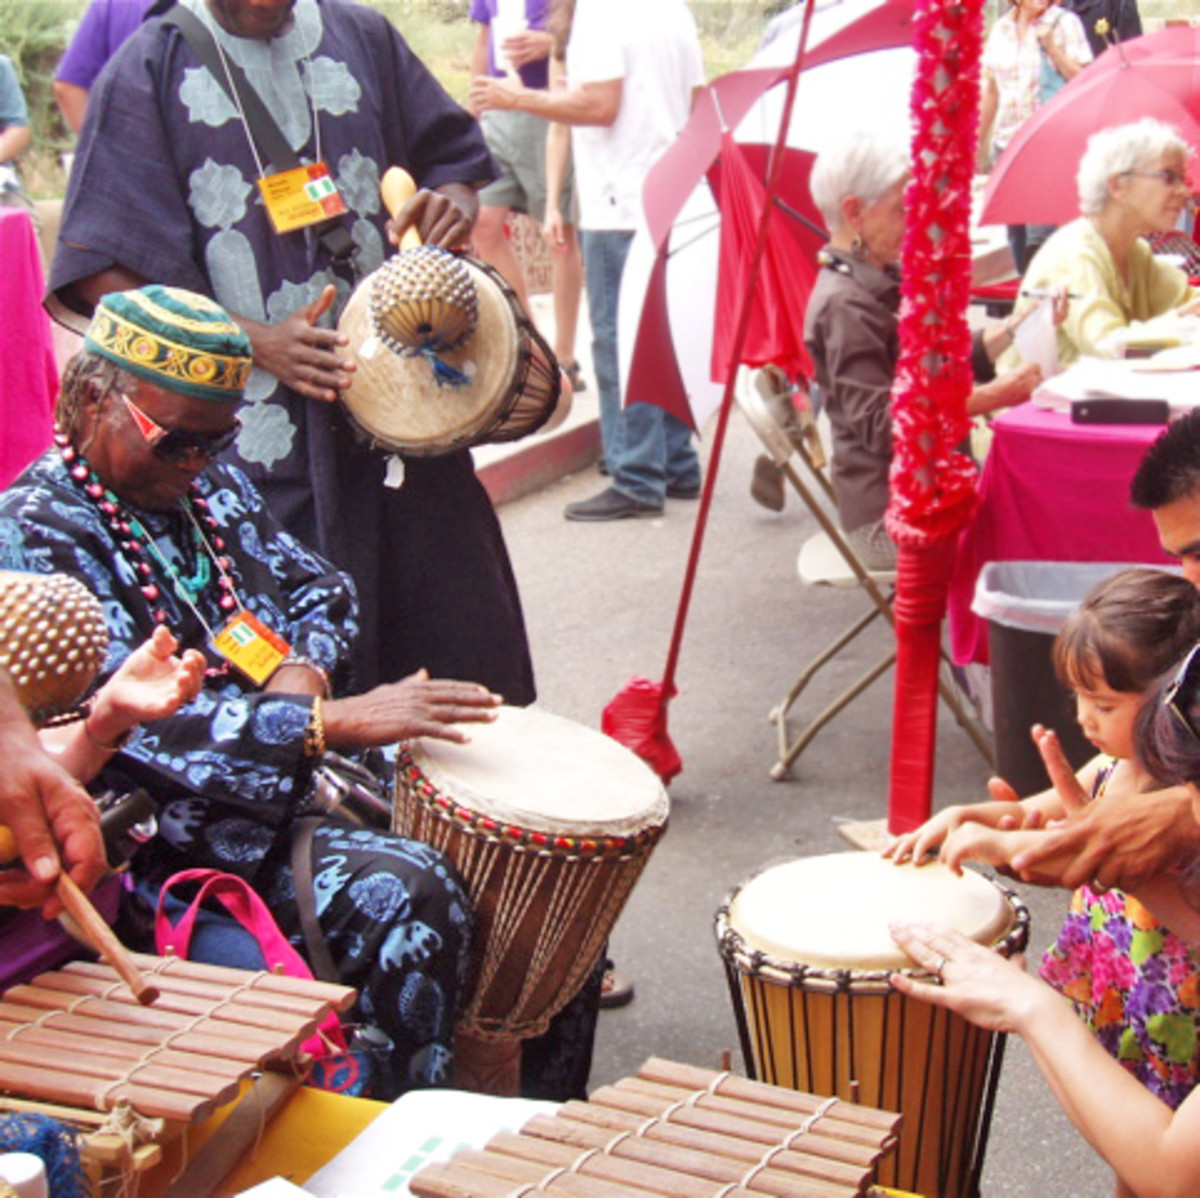 Drumming by Ghanaian drummers and anyone else who wants to.